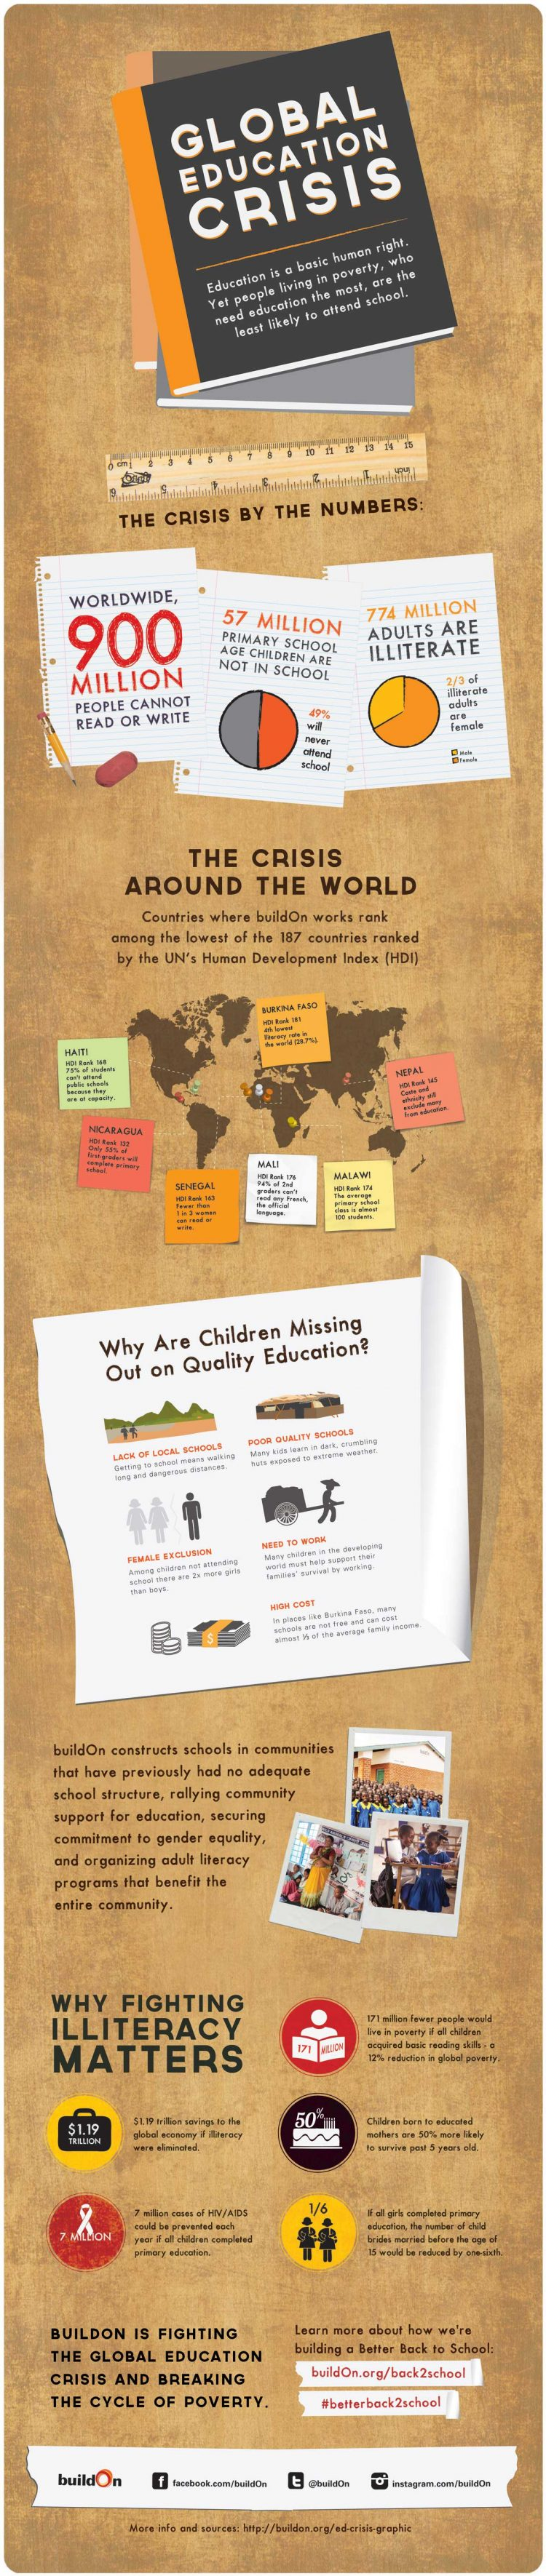 Buildon Infographic: The global education crisis